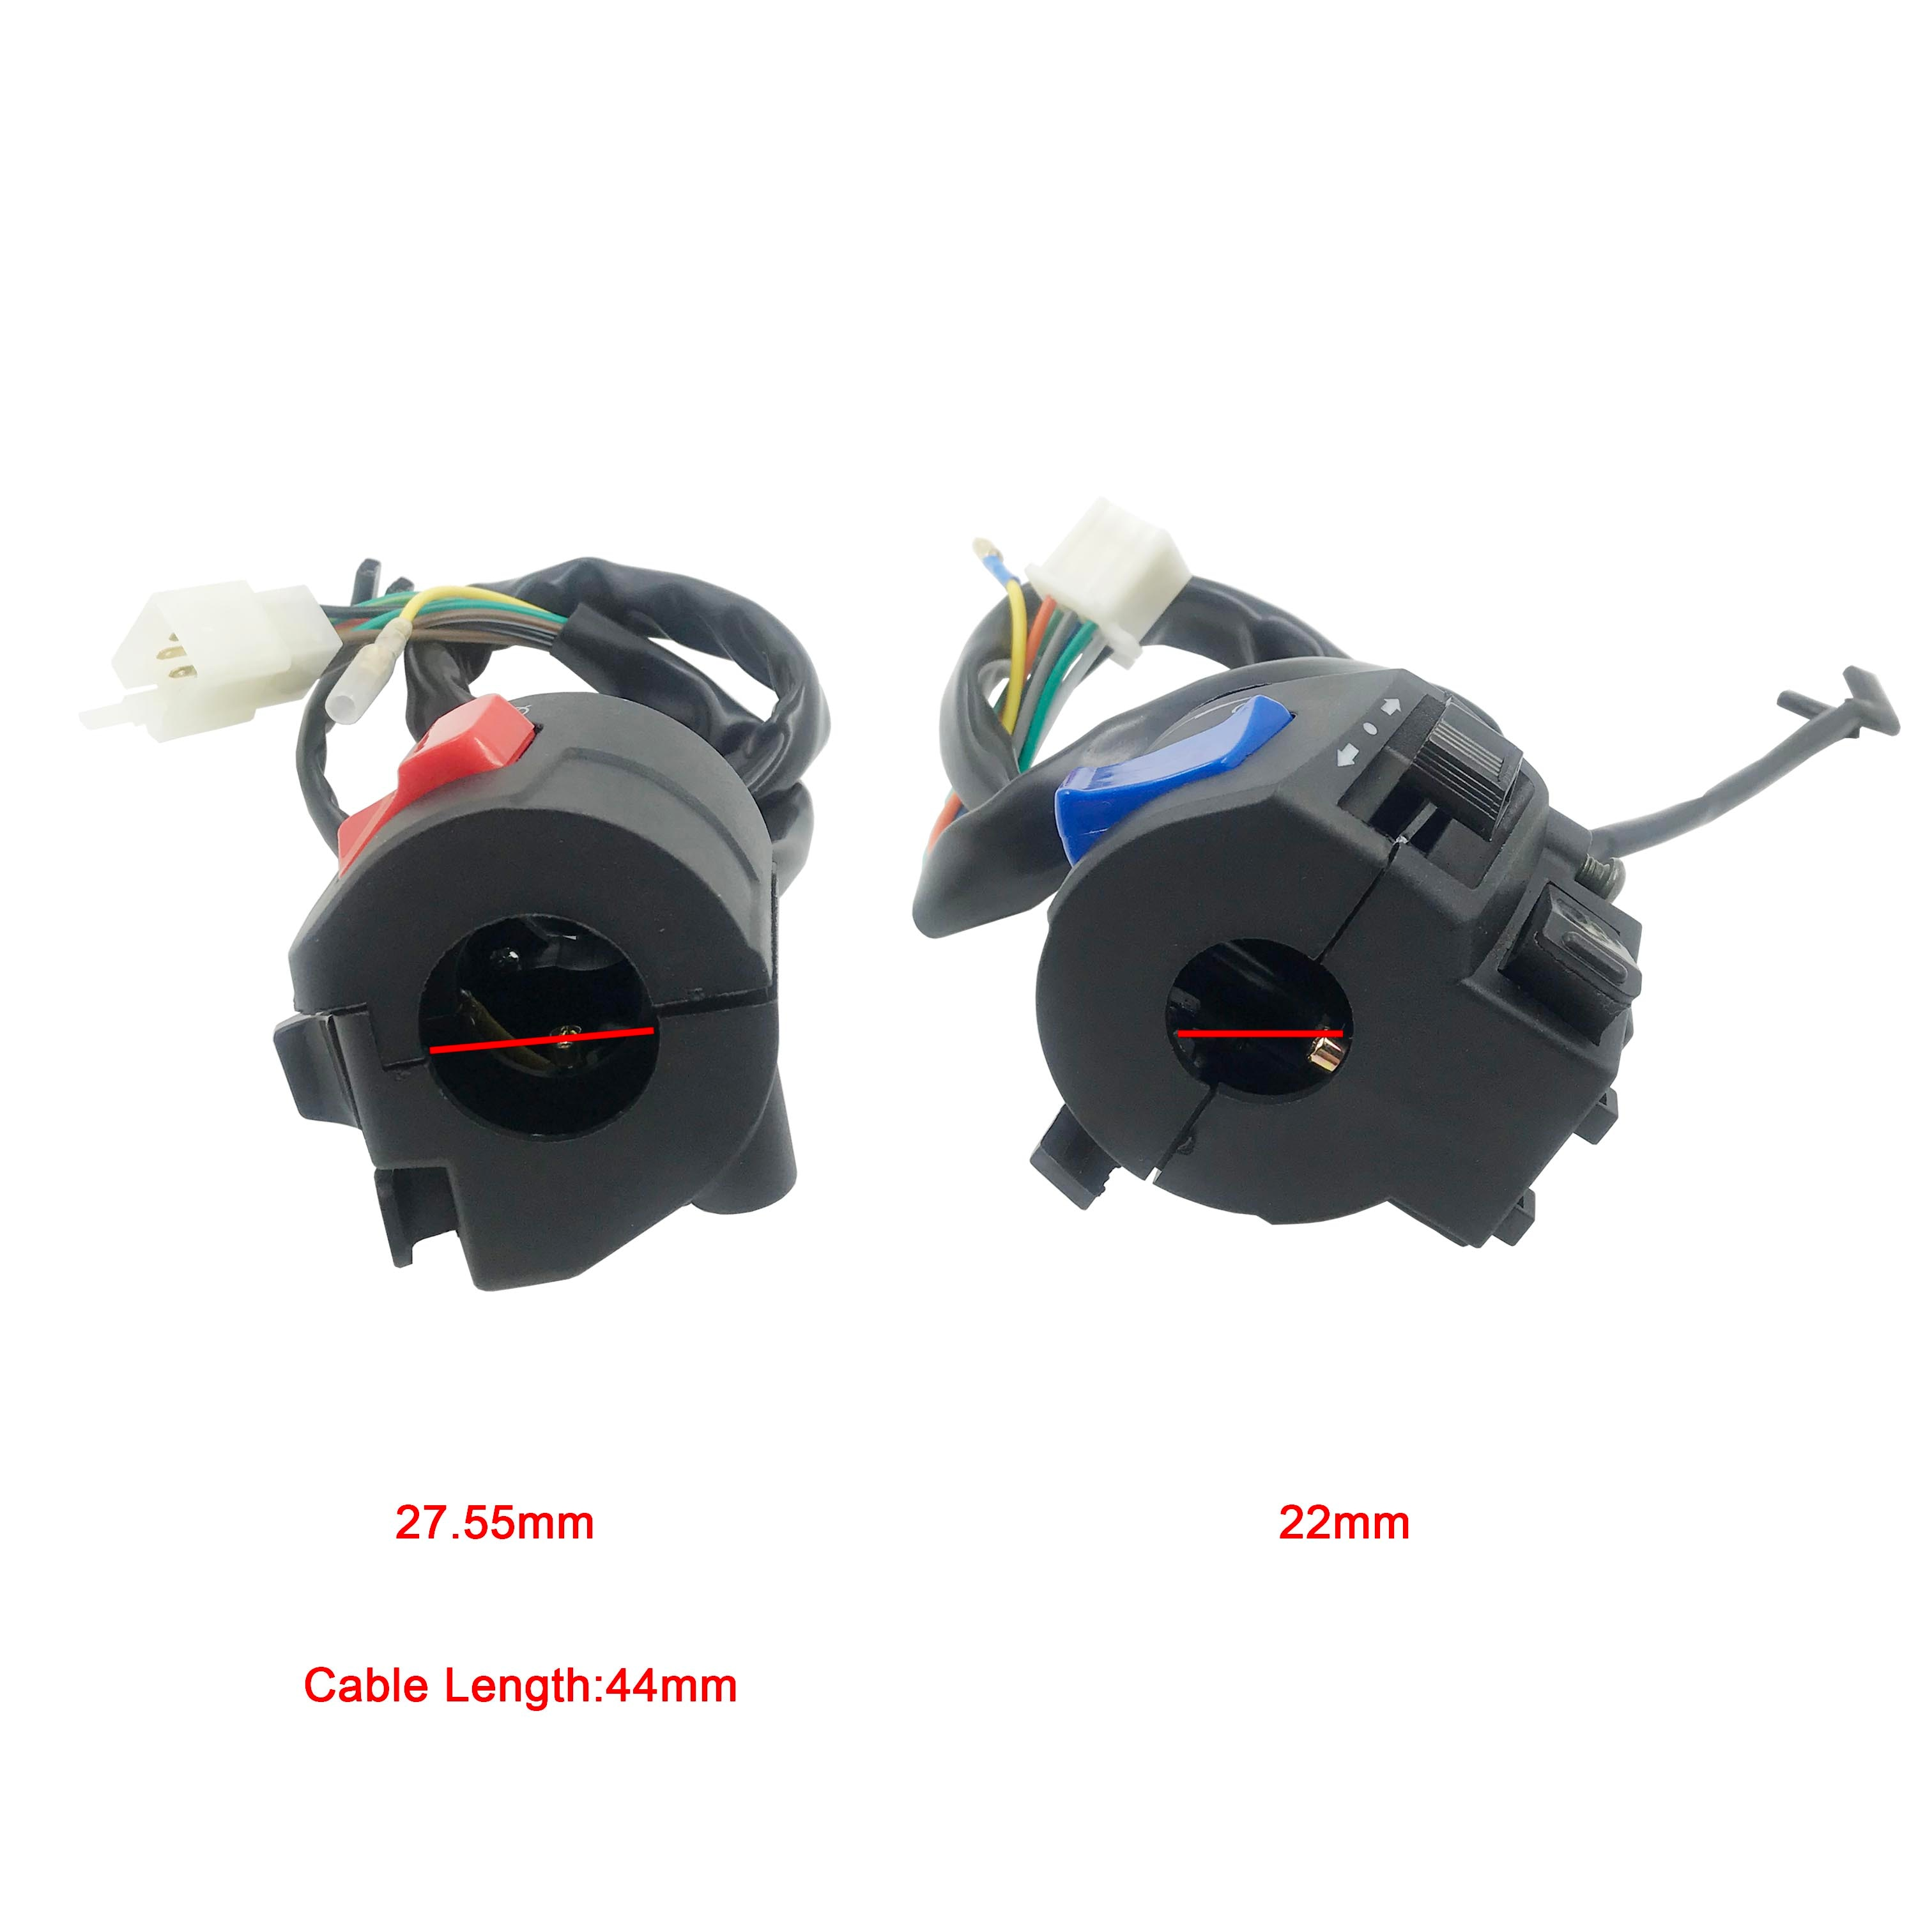 1 Pair 12V DC Right and Left side, Universal Motorcycle Control Switch 7/8 22cm Handlebar